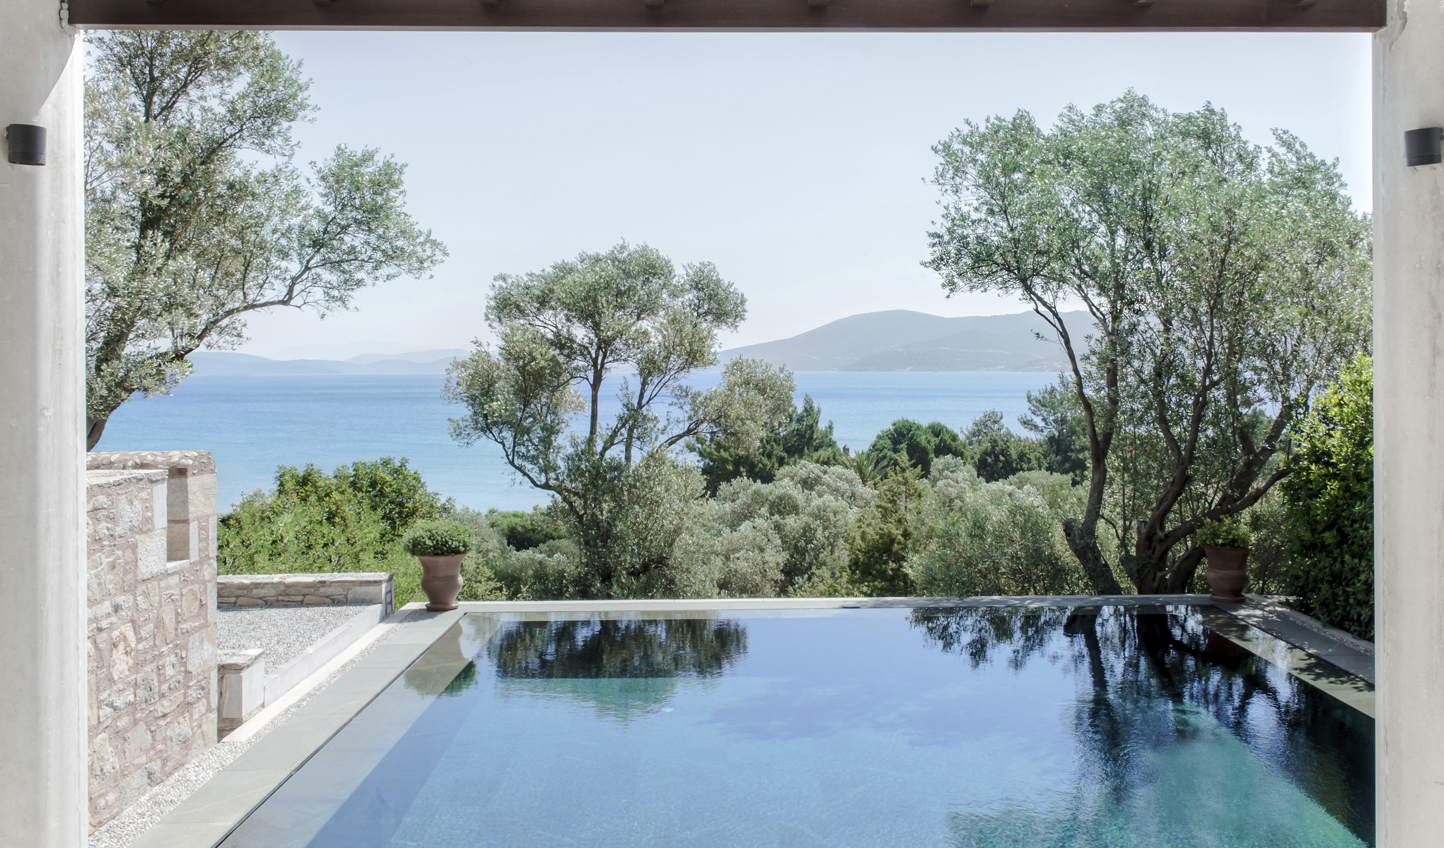 Dive into your private plunge pool and soak up the view